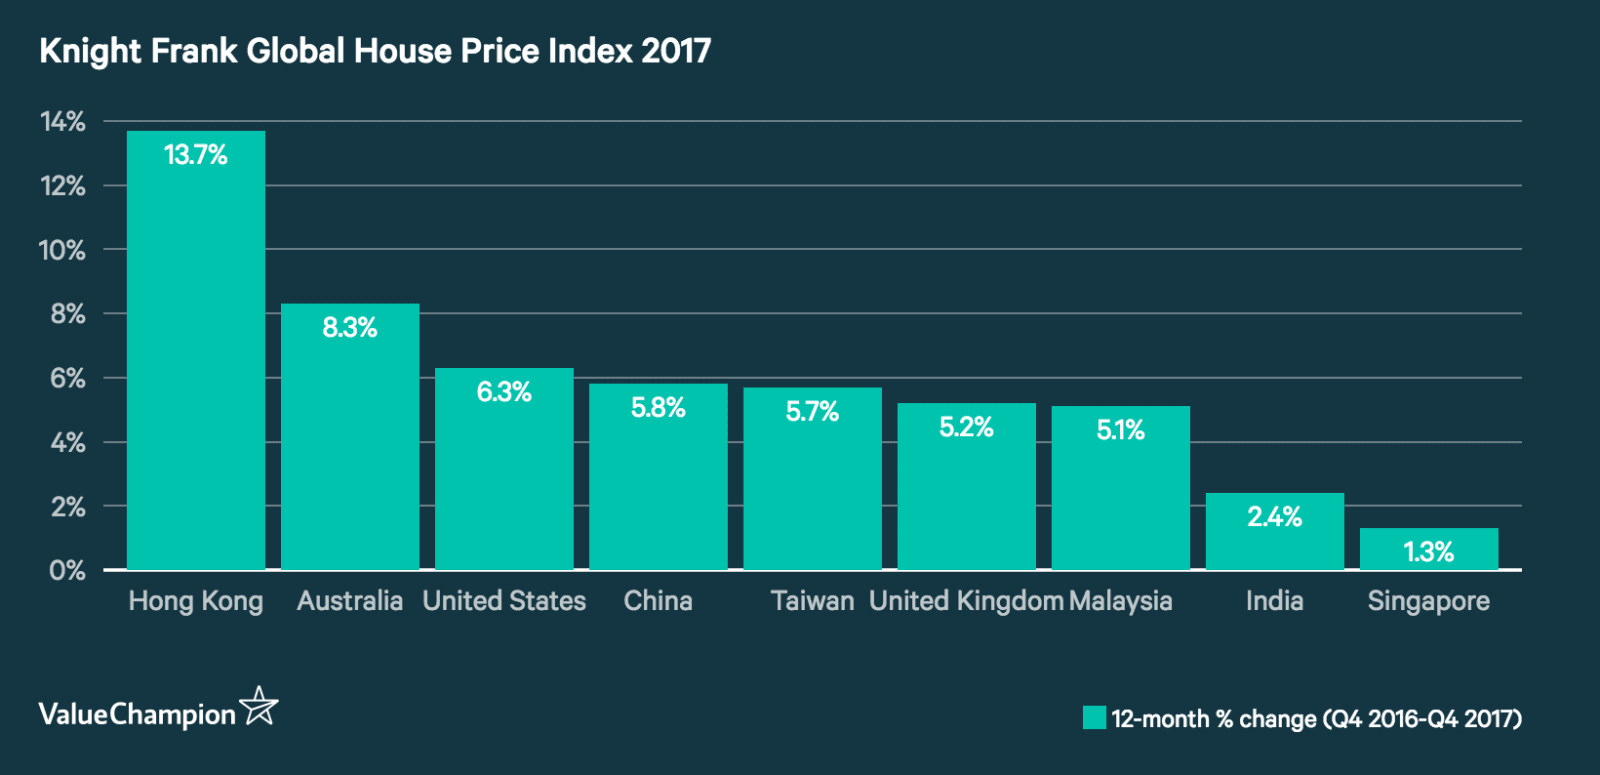 Knight Frank Global House Price Index 2017